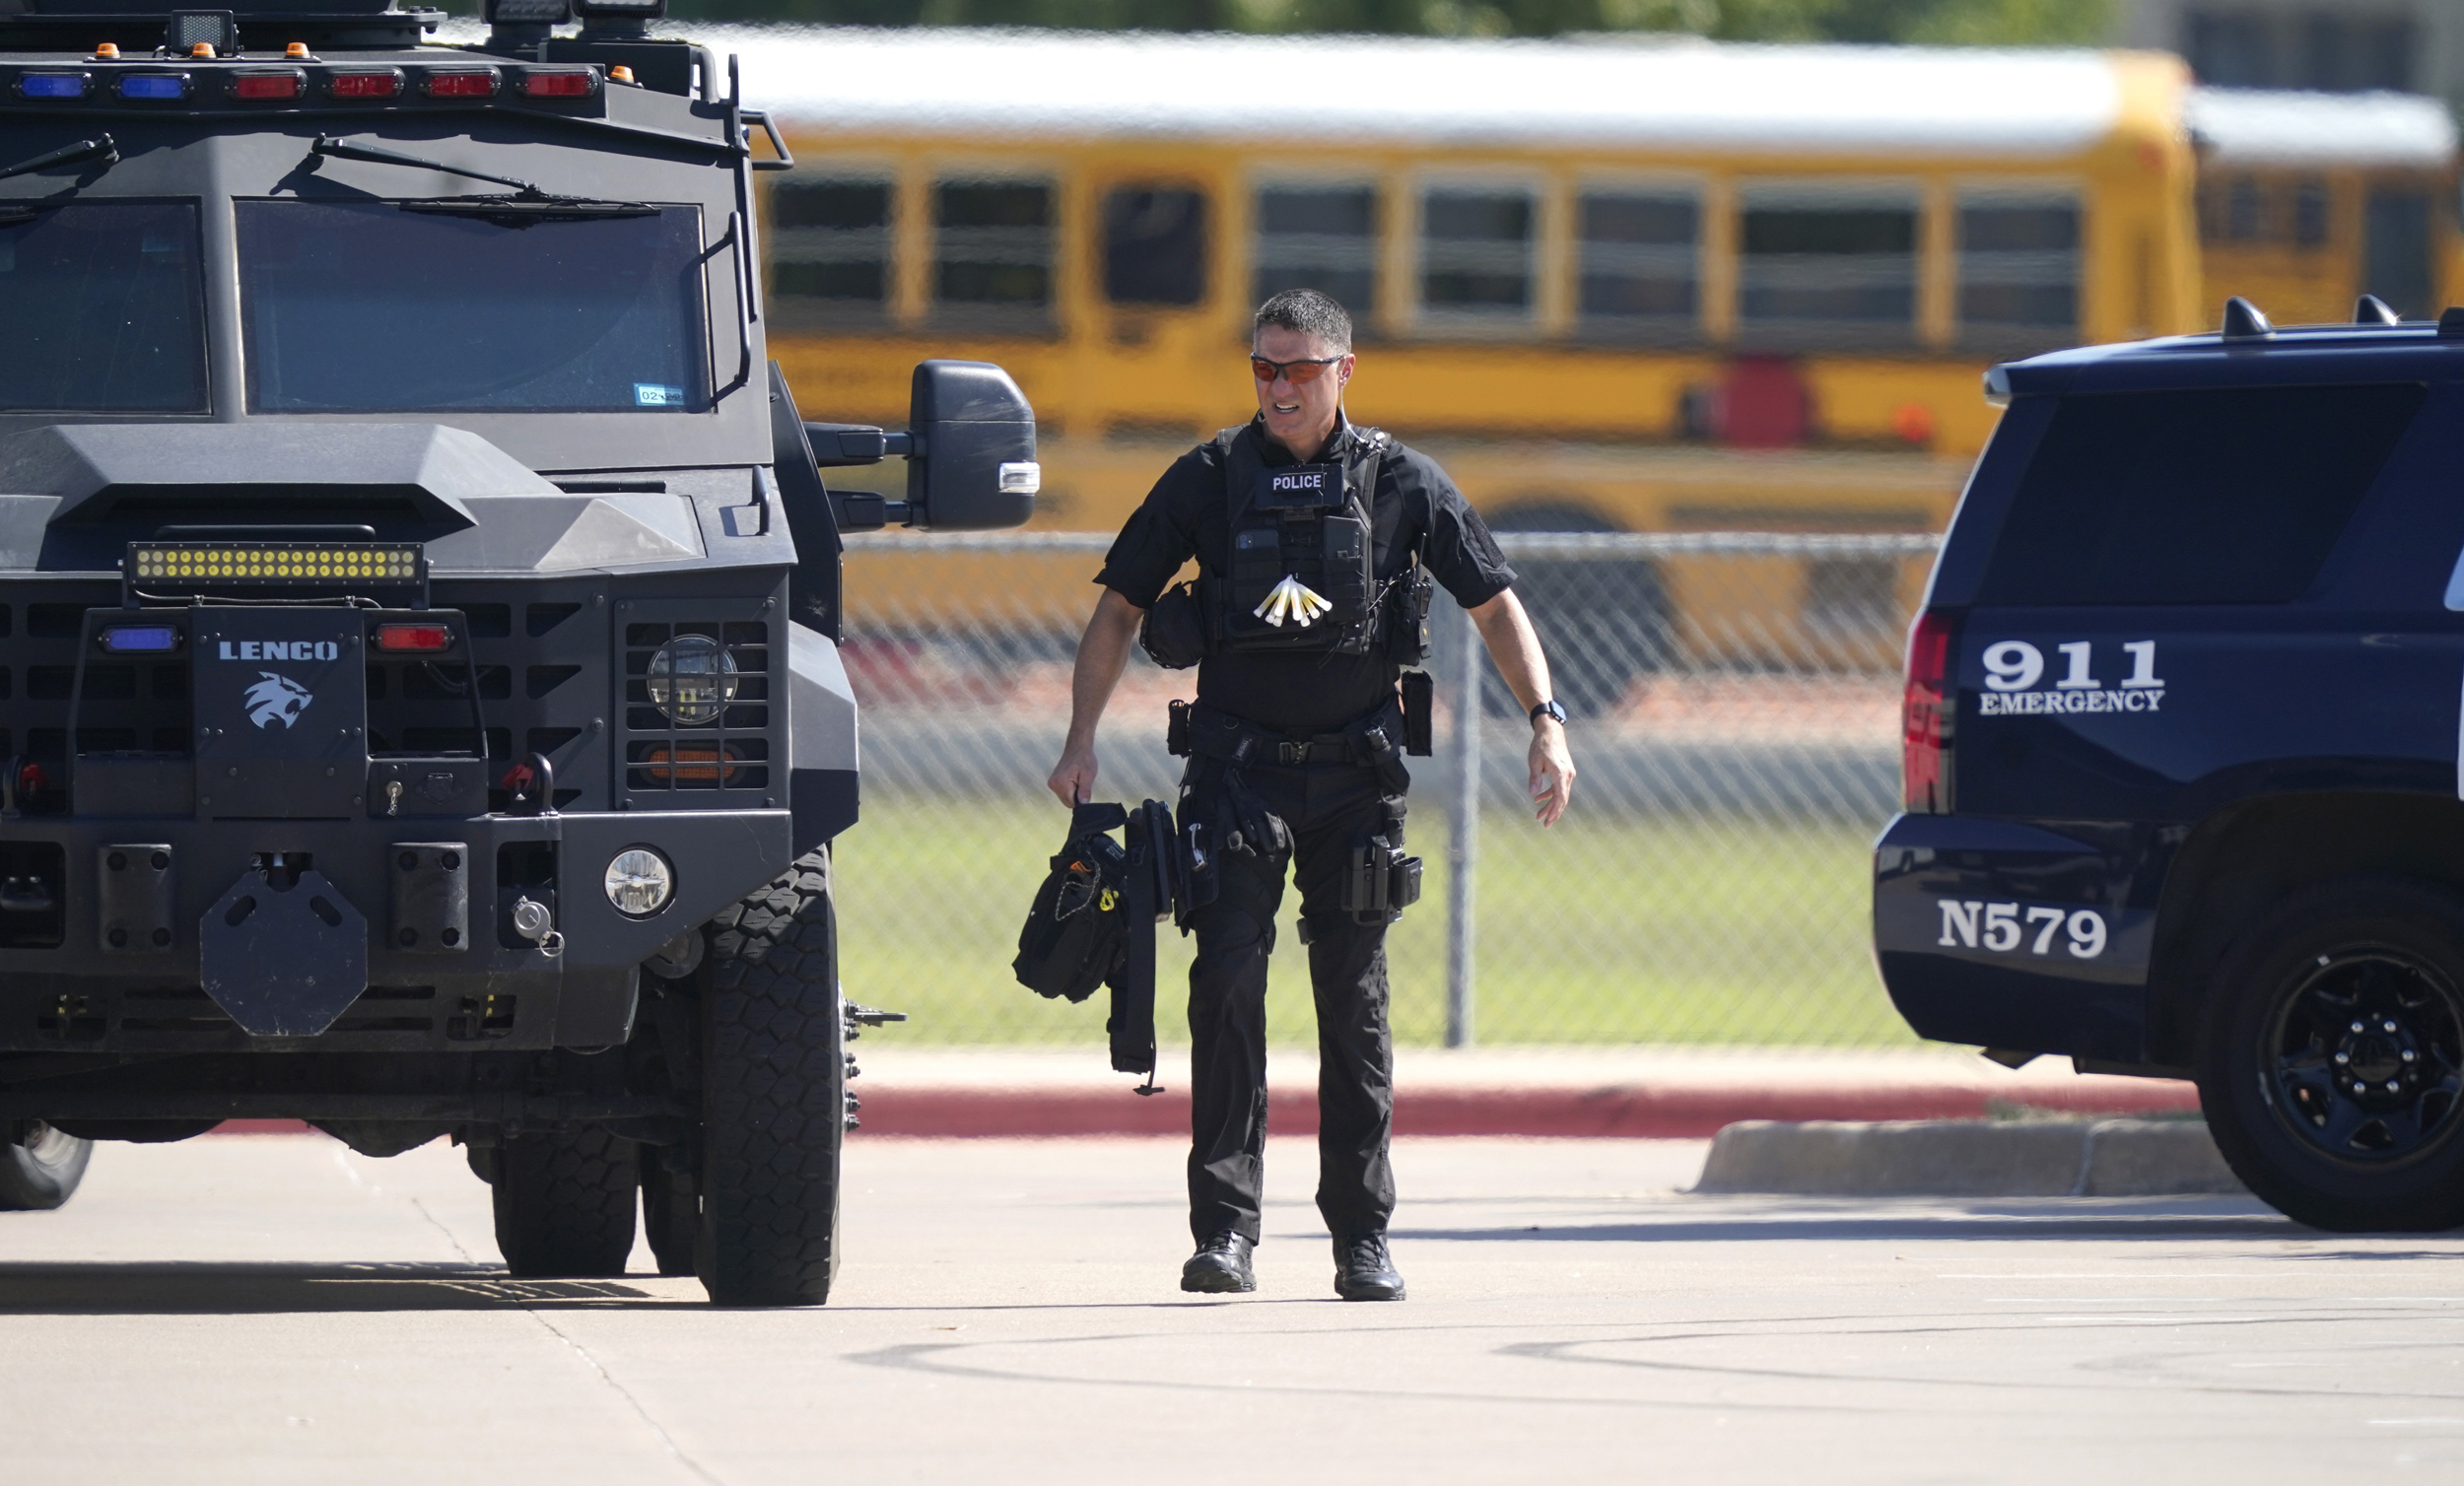 4 wounded in Texas school shooting; manhunt underway for suspected student gunman